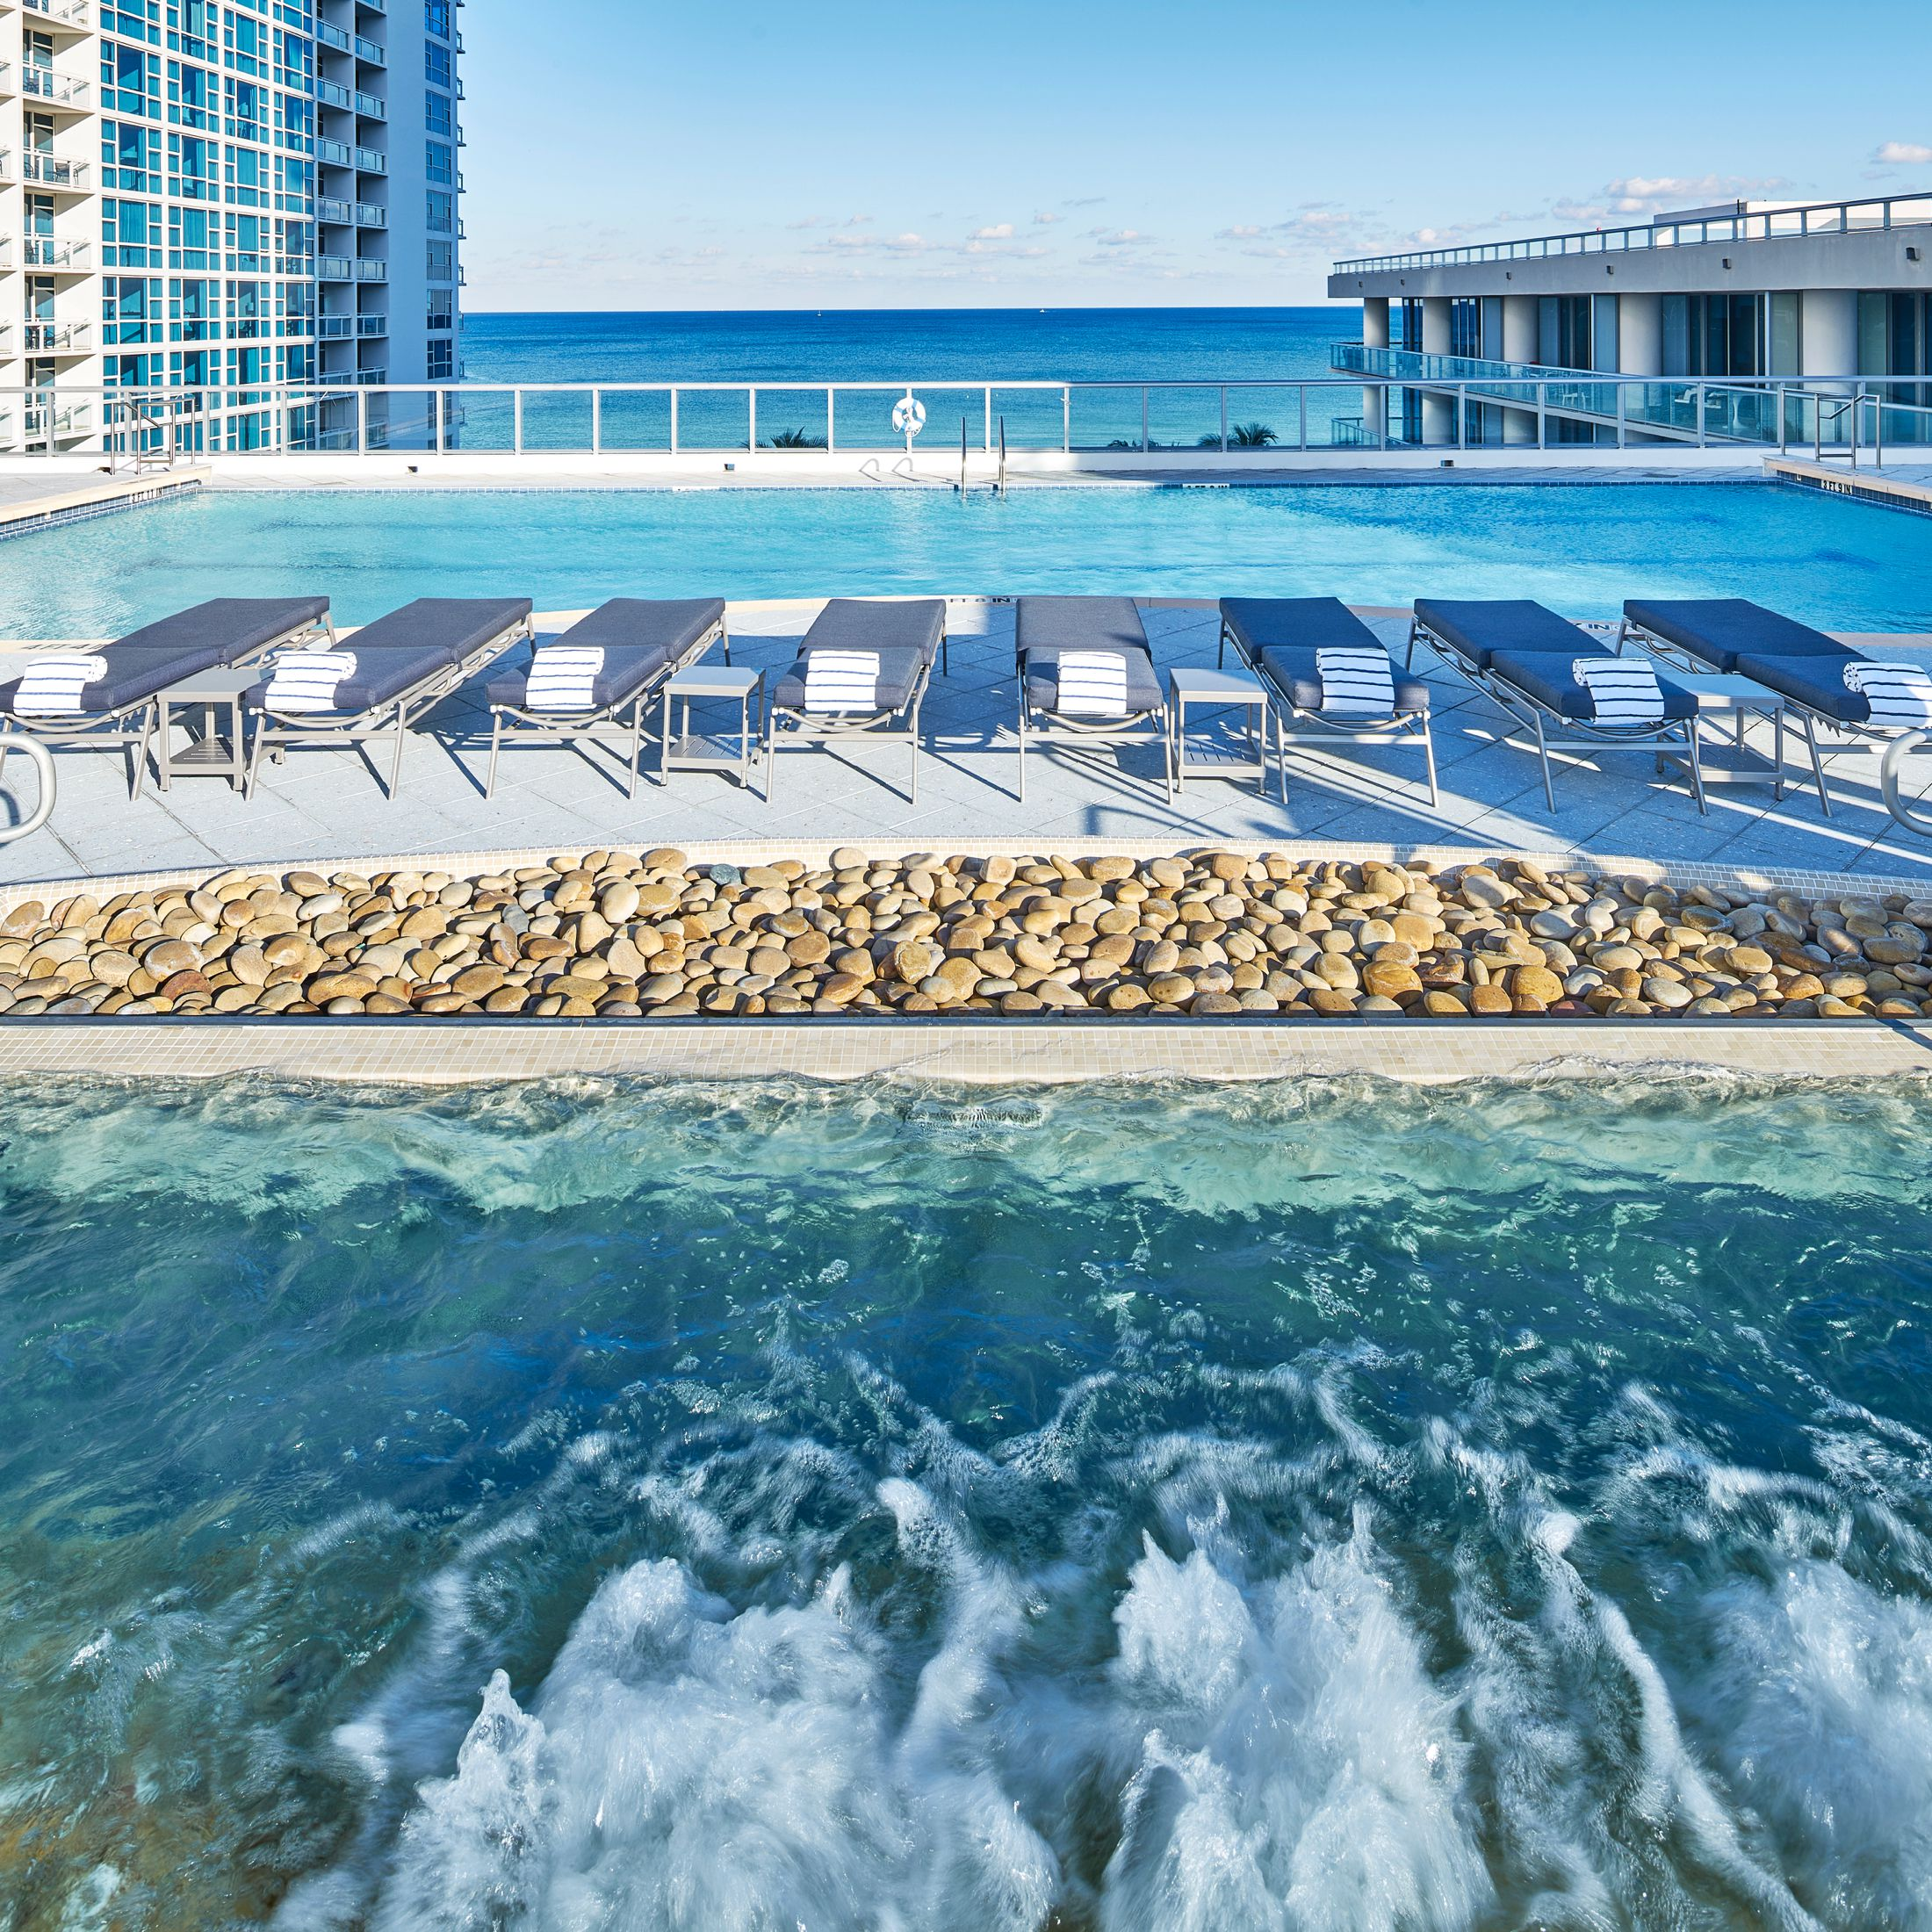 residence garden design hotels cheap miami aspx in studio private beach w gardens getimagefromdb map oceanfront hotel for south at id part